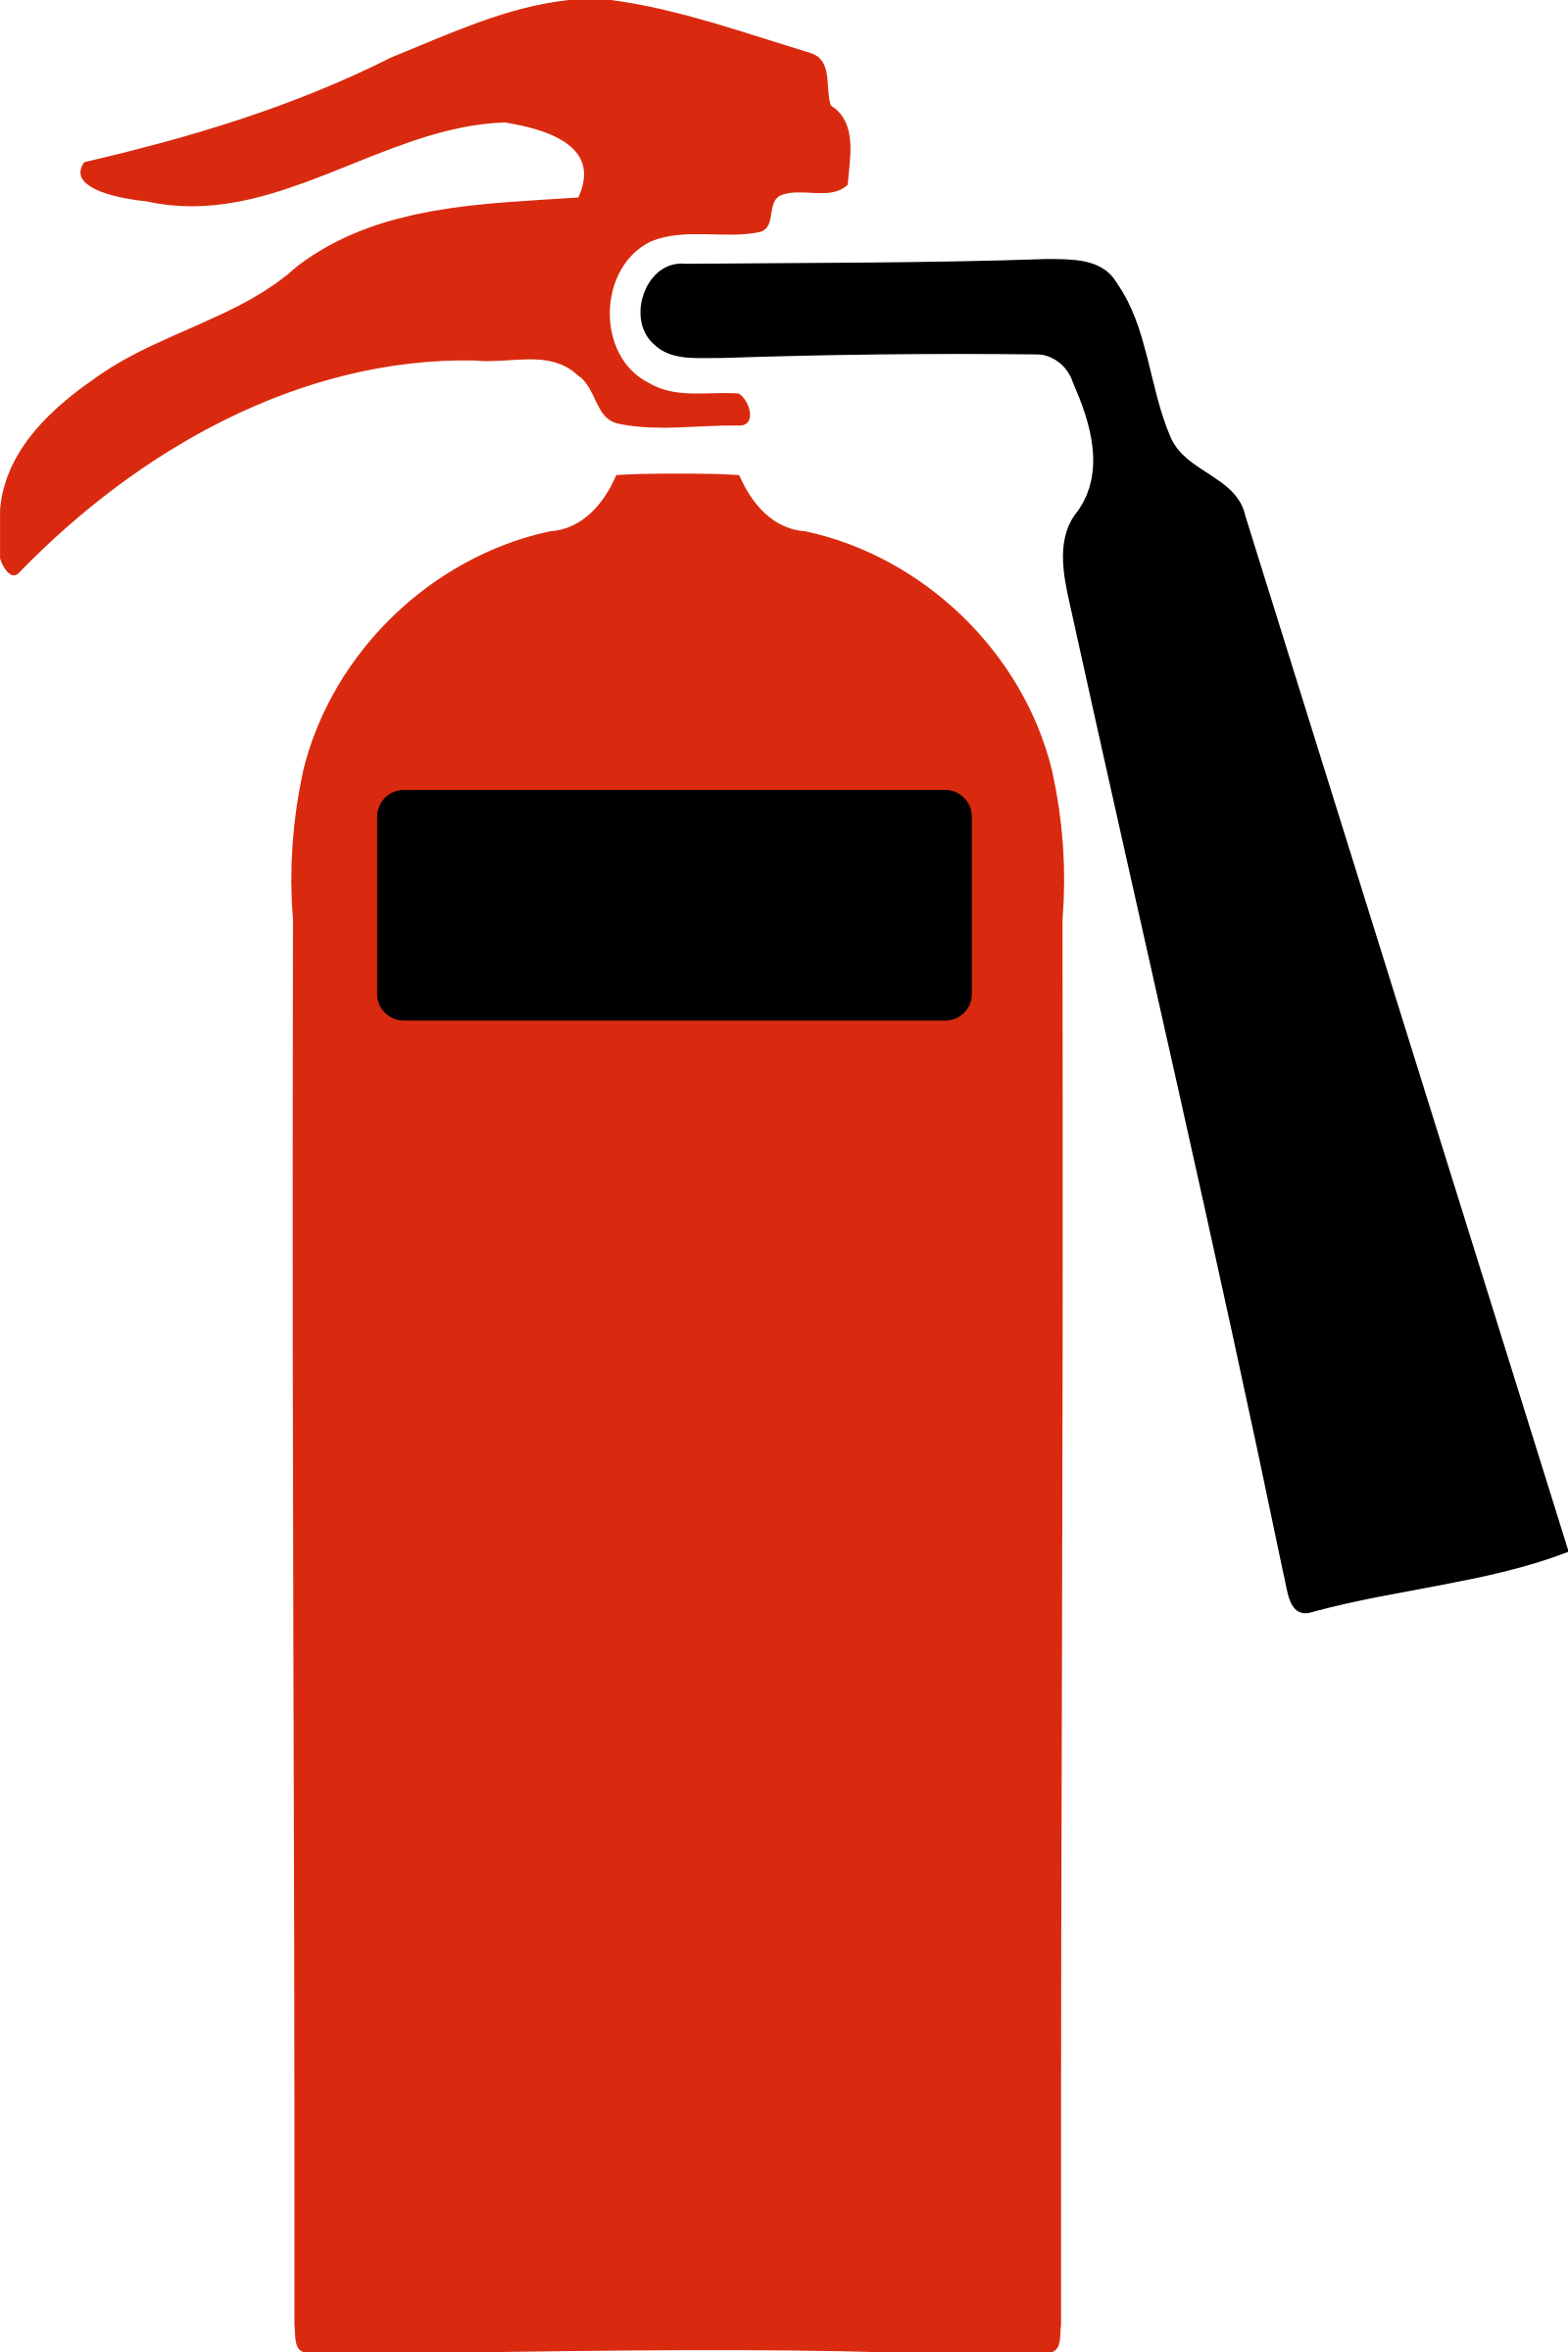 Wall e clipart fire extinguisher clipart freeuse stock Extinguisher PNG images free download clipart freeuse stock